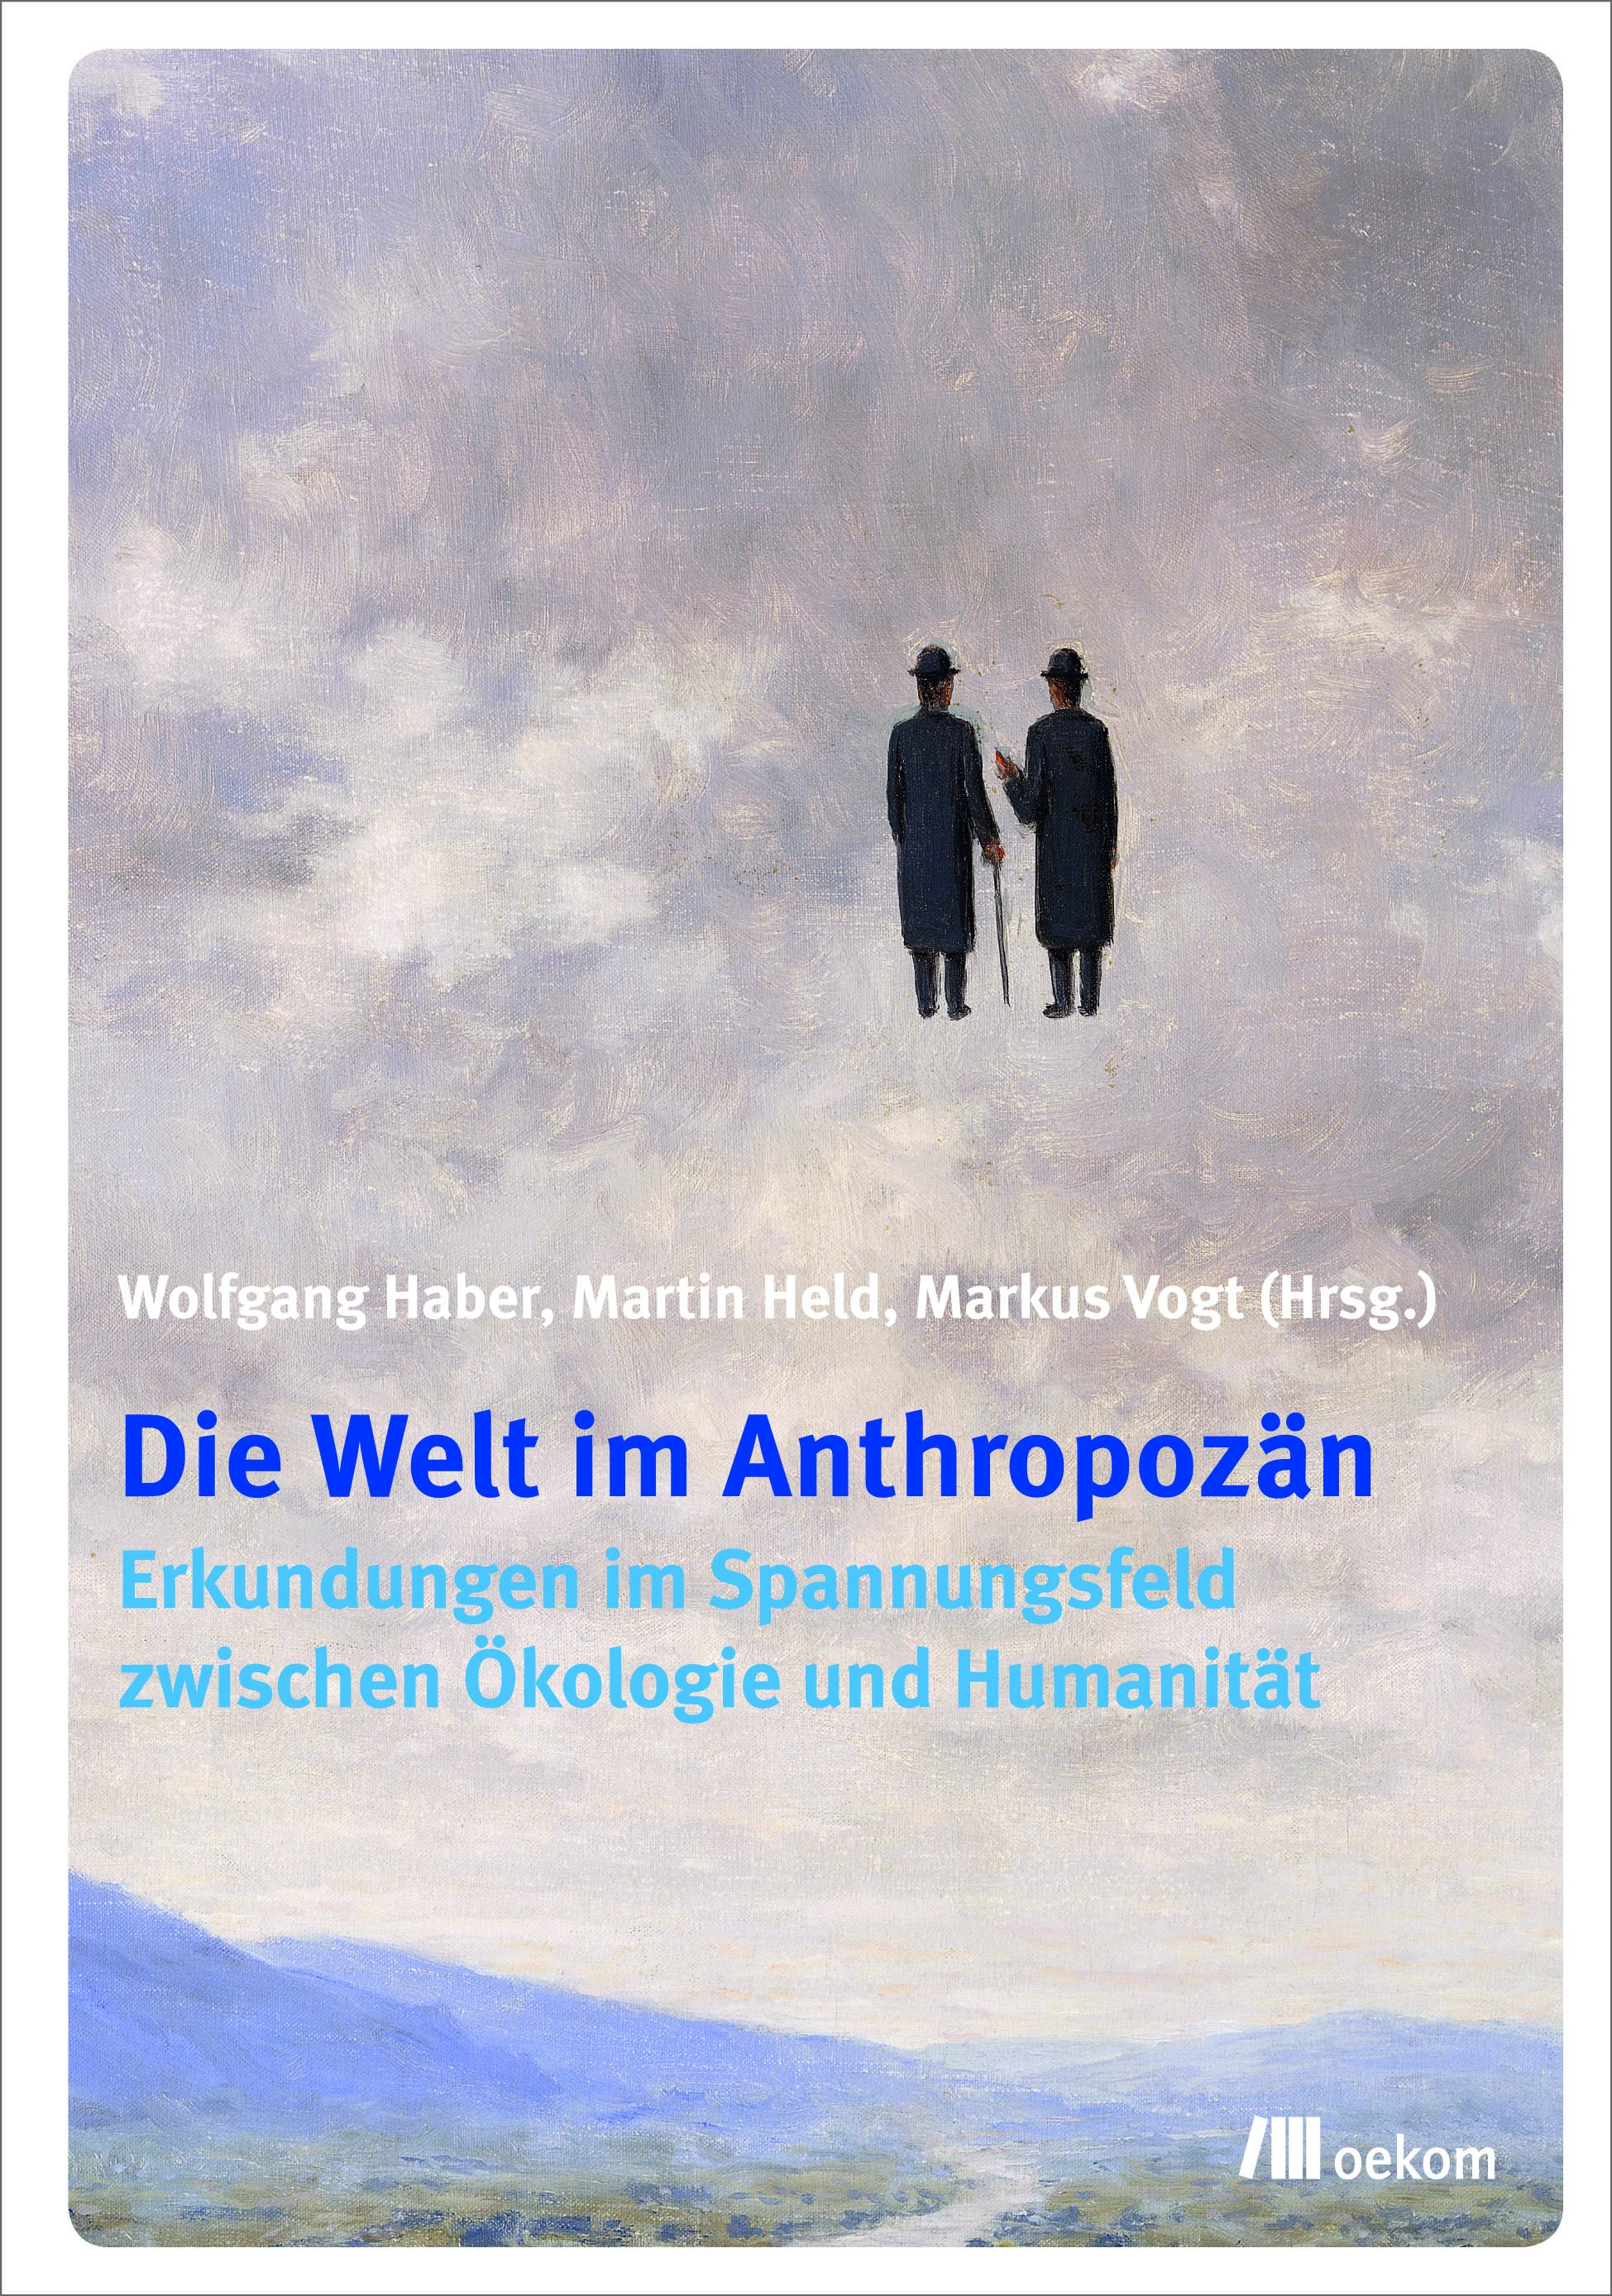 Titel Held Anthropozaen